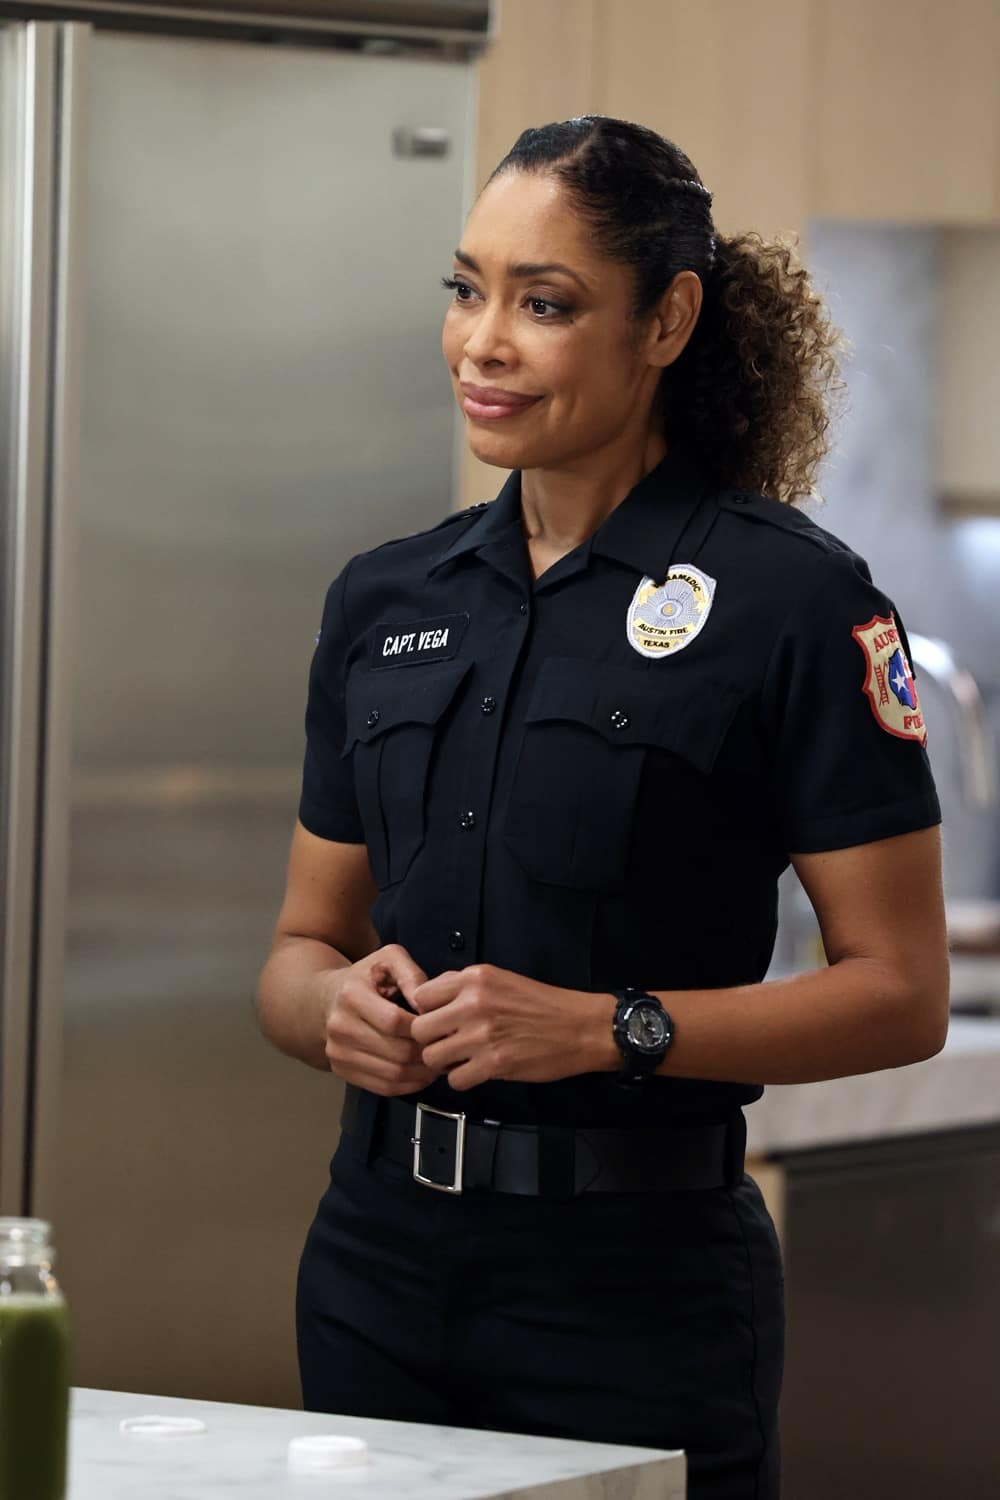 "9-1-1: LONE STAR Season 2 Episode 5 : Gina Torres in the ""Difficult Conversations"" episode of 9-1-1: LONE STAR airing Monday, Feb. 15 (9:01-10:00 PM ET/PT) on FOX. © 2021 Fox Media LLC. CR: Jordin Althaus/FOX."